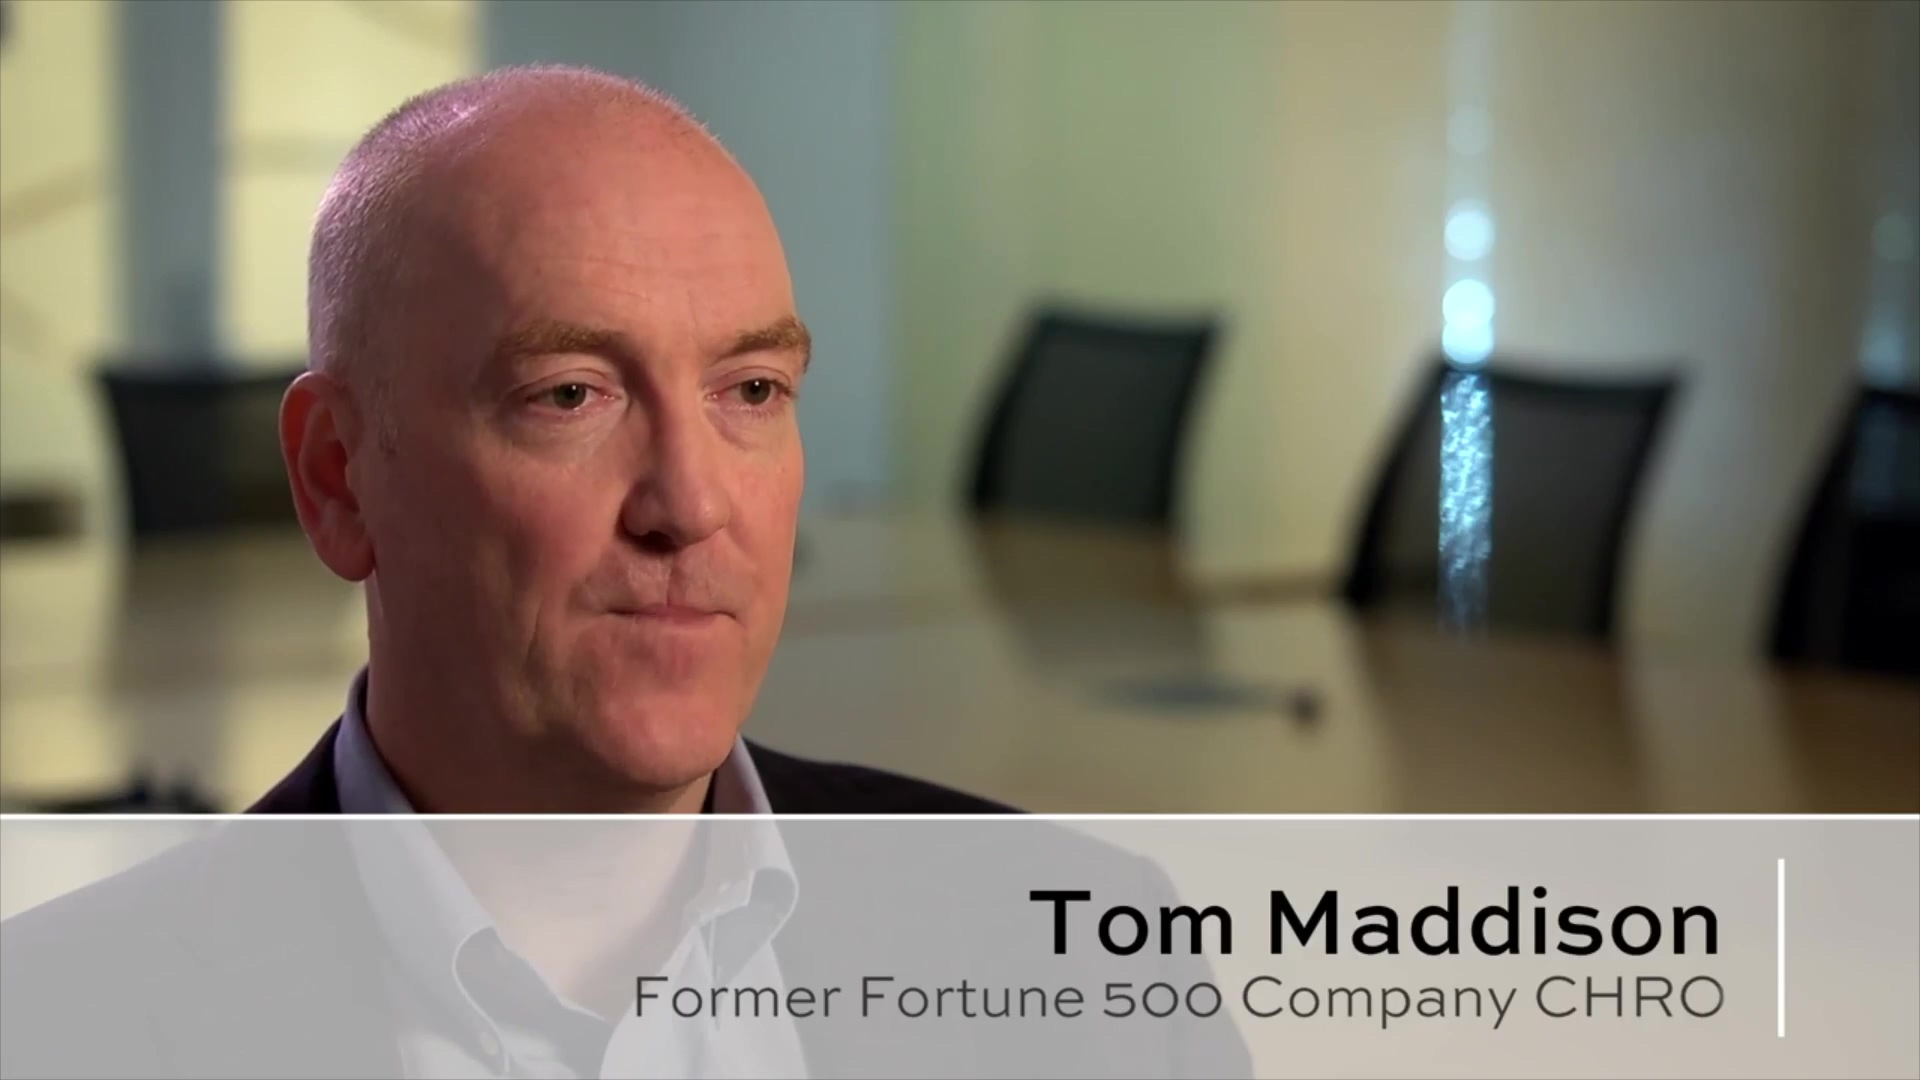 perspectives on outplacement Tom Maddison